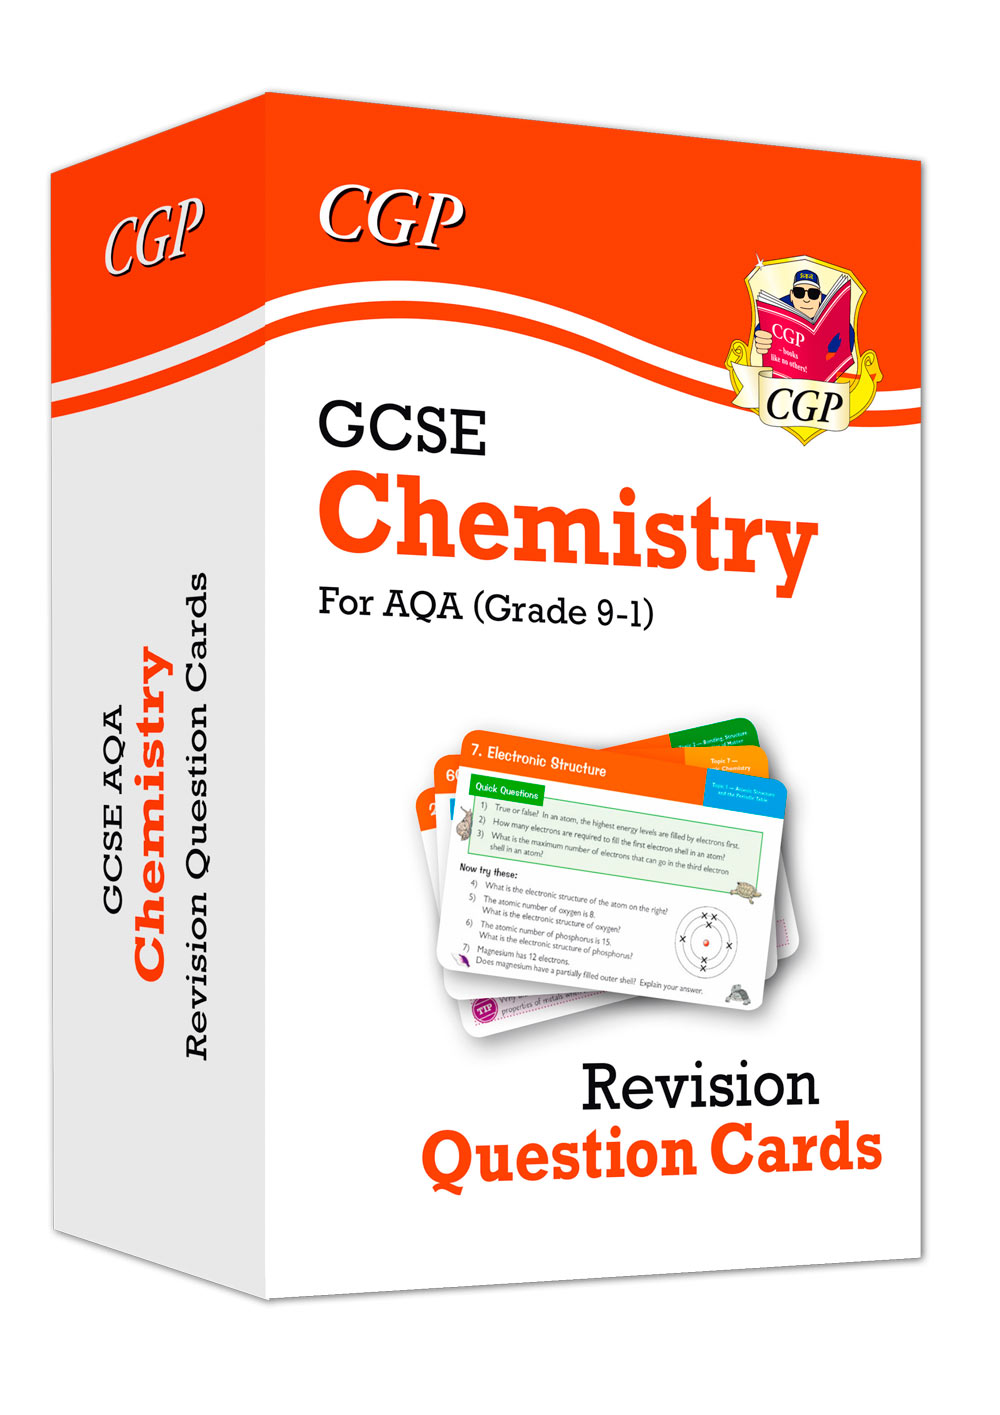 CAF41 - 9-1 GCSE Chemistry AQA Revision Question Cards